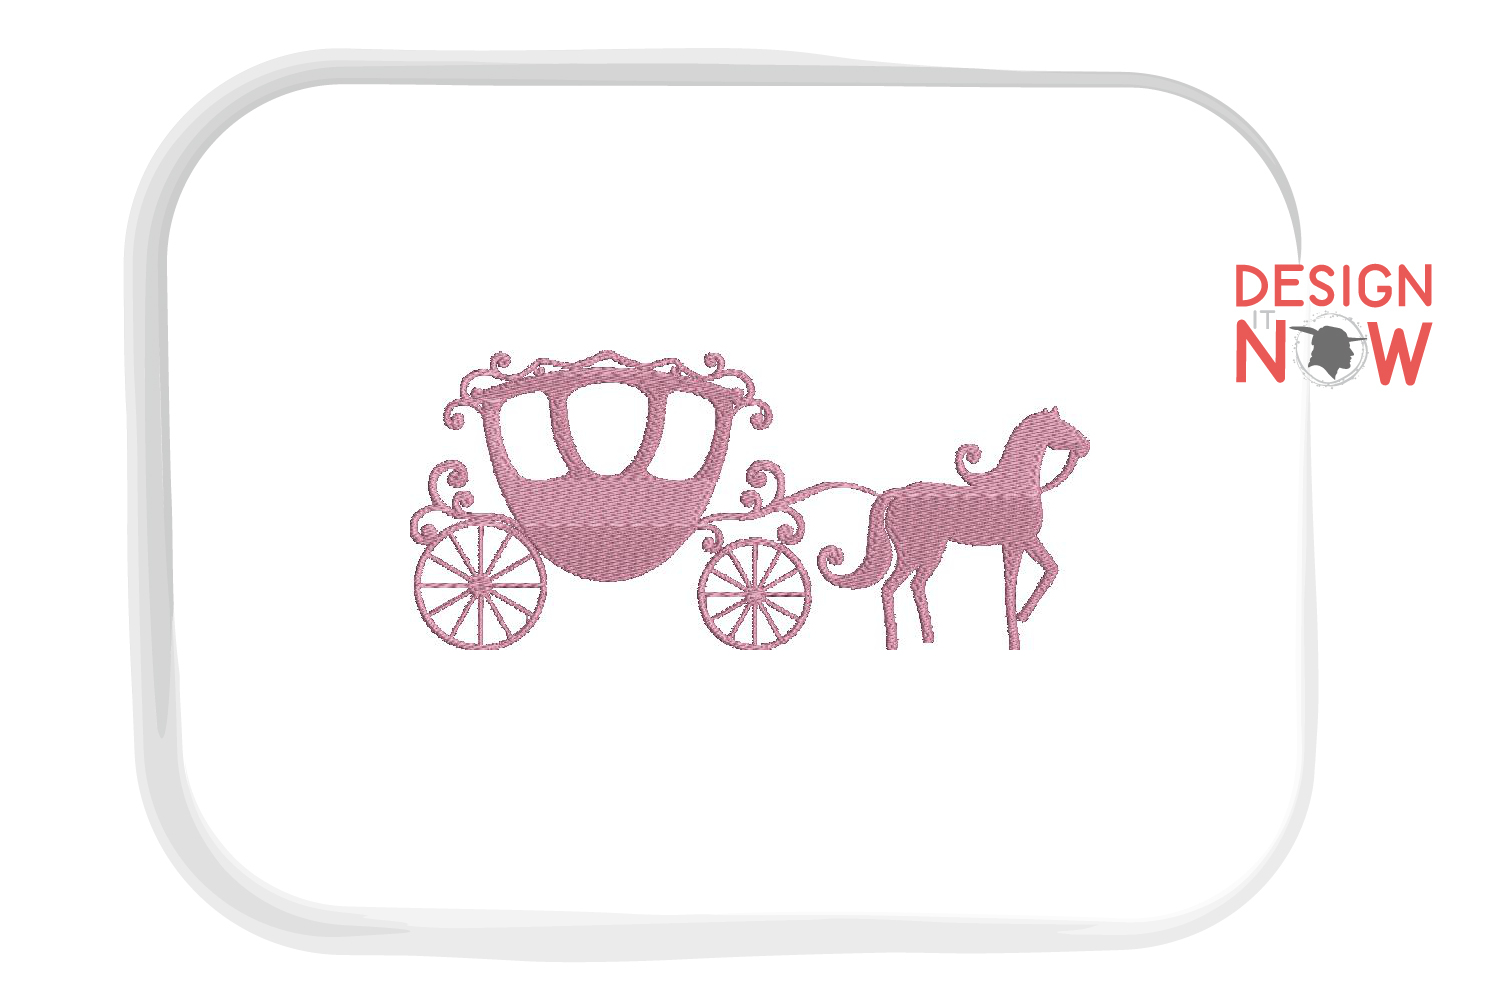 Princess Carriage Embroidery Design, Crown Embroidery, Queen example image 2